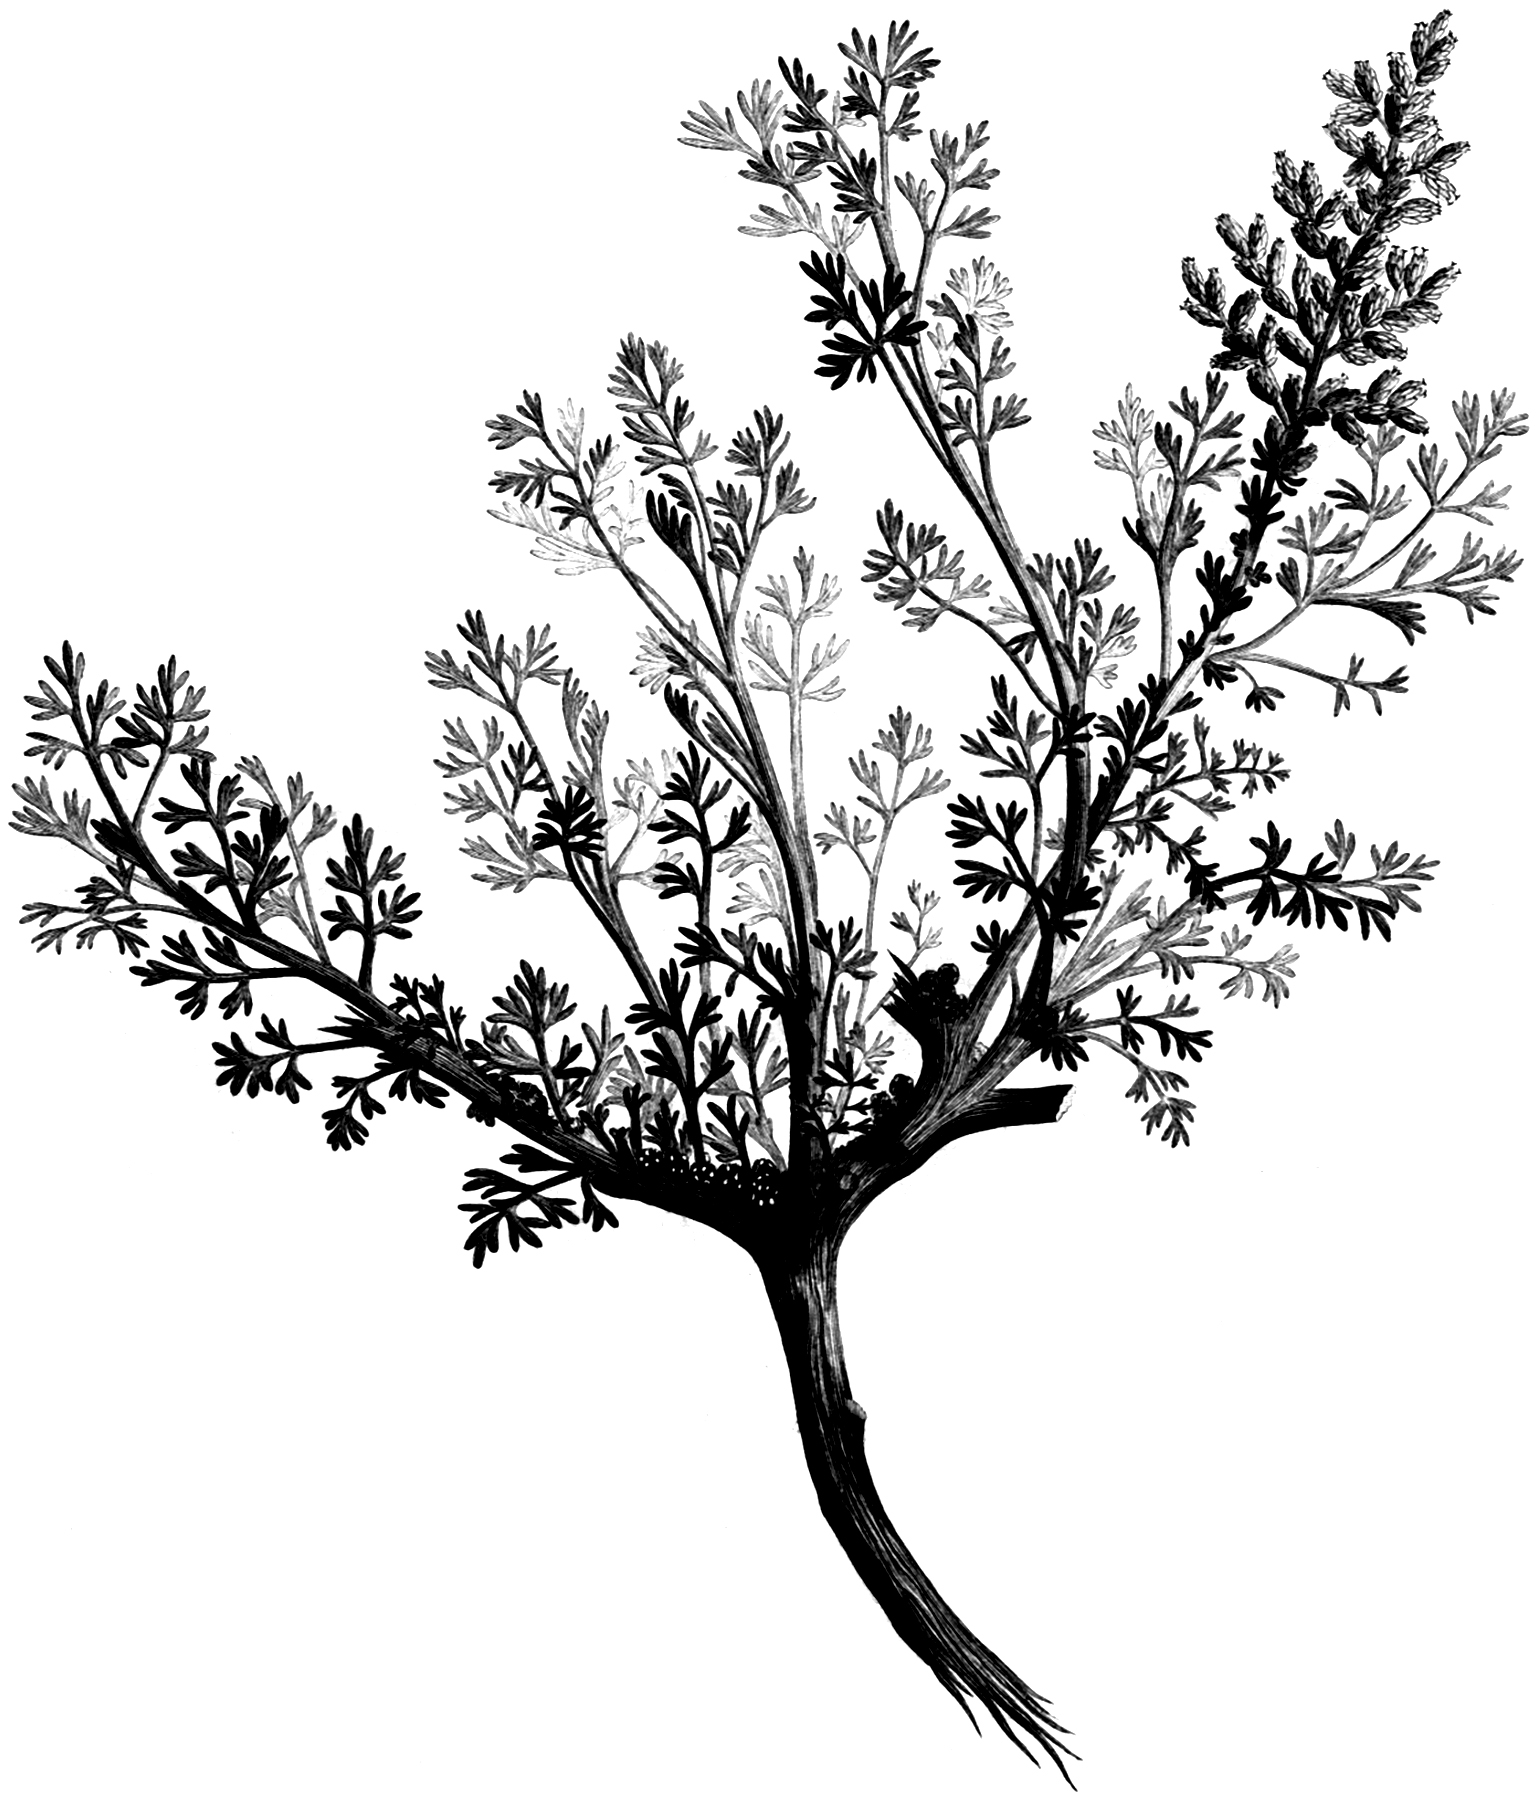 Vintage Black and White Leafy Branch Graphic